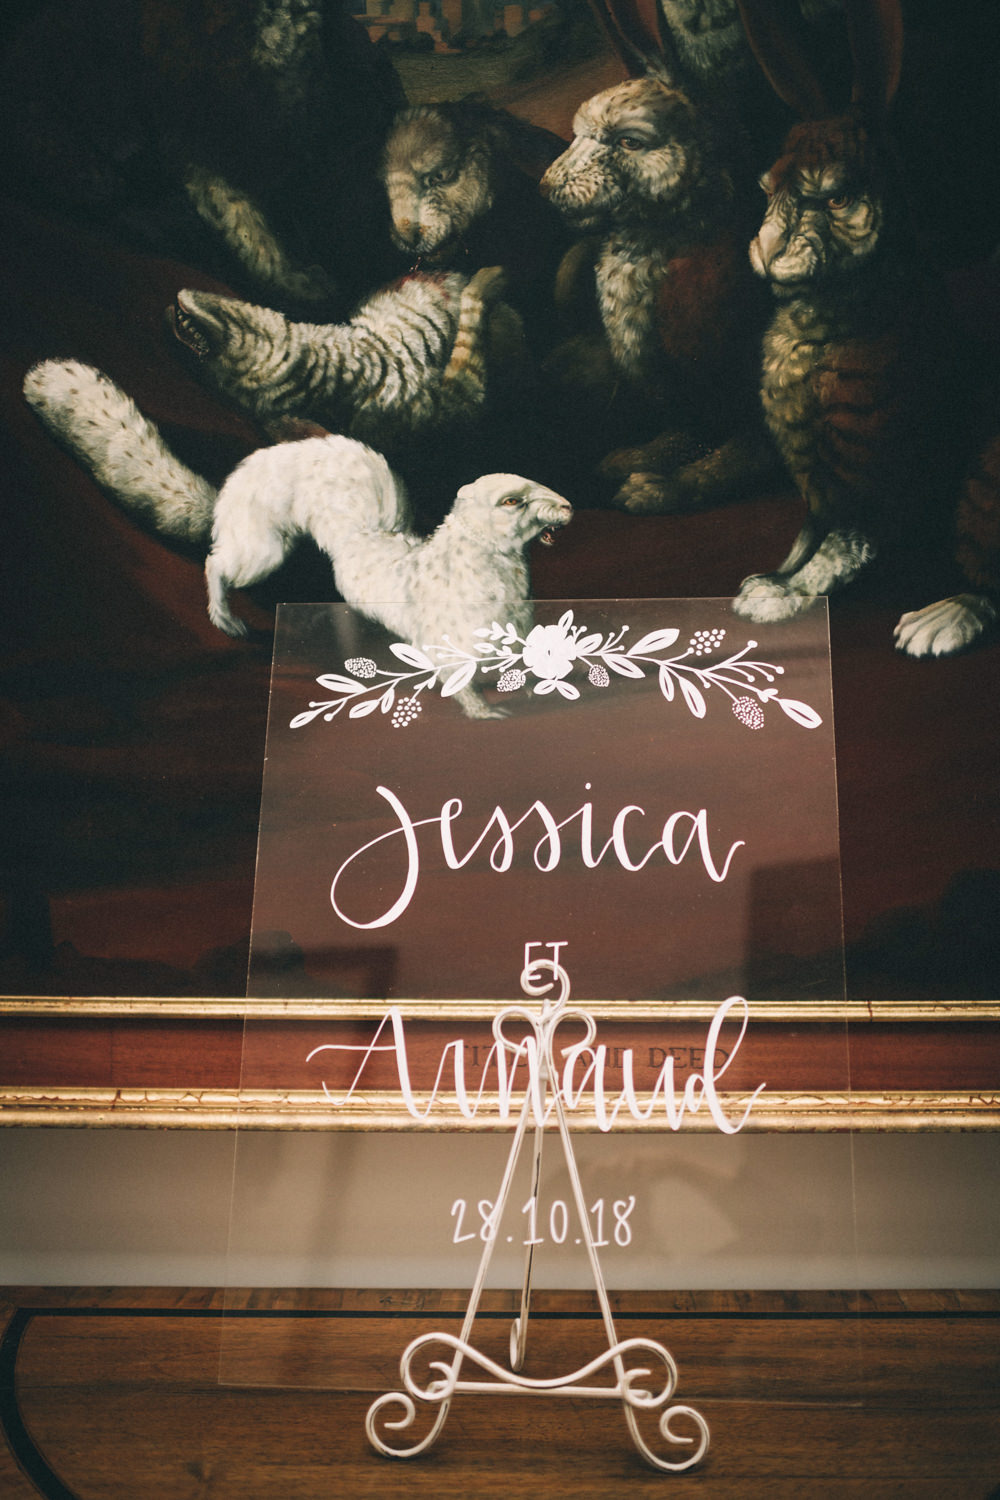 Jessica-Arno-Intimate-21c-Museum-Louisville-Kentucky-Wedding-By-Sarah-Katherine-Davis-Photography-57edit.jpg